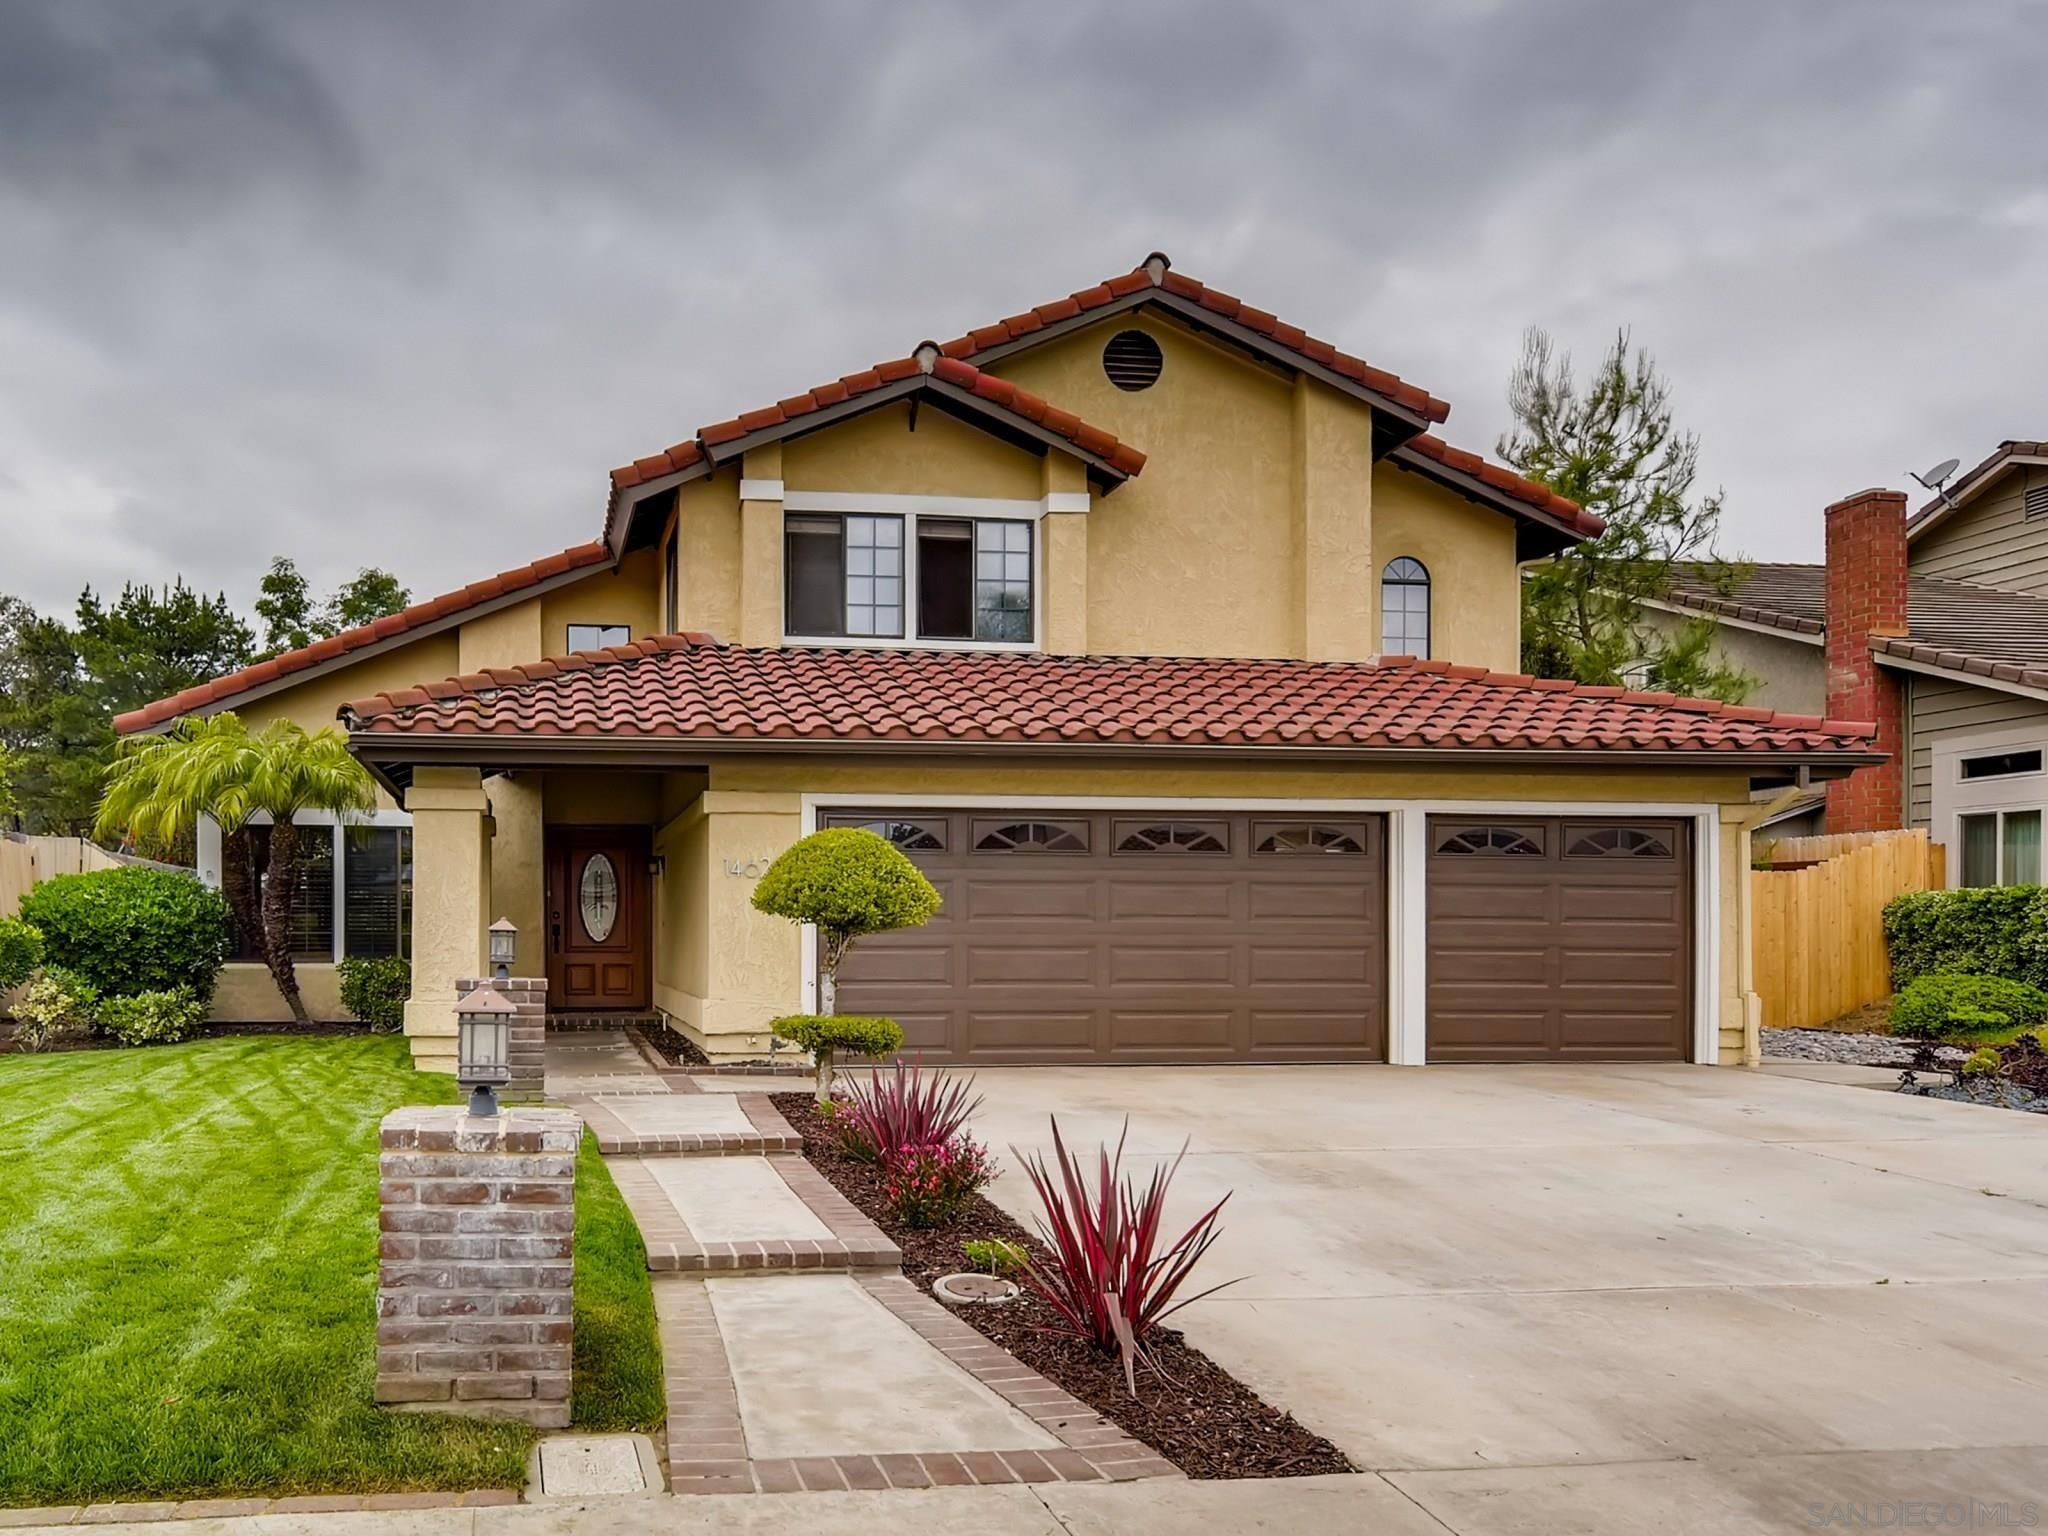 Main Photo: POWAY House for sale : 4 bedrooms : 14626 Silverset St